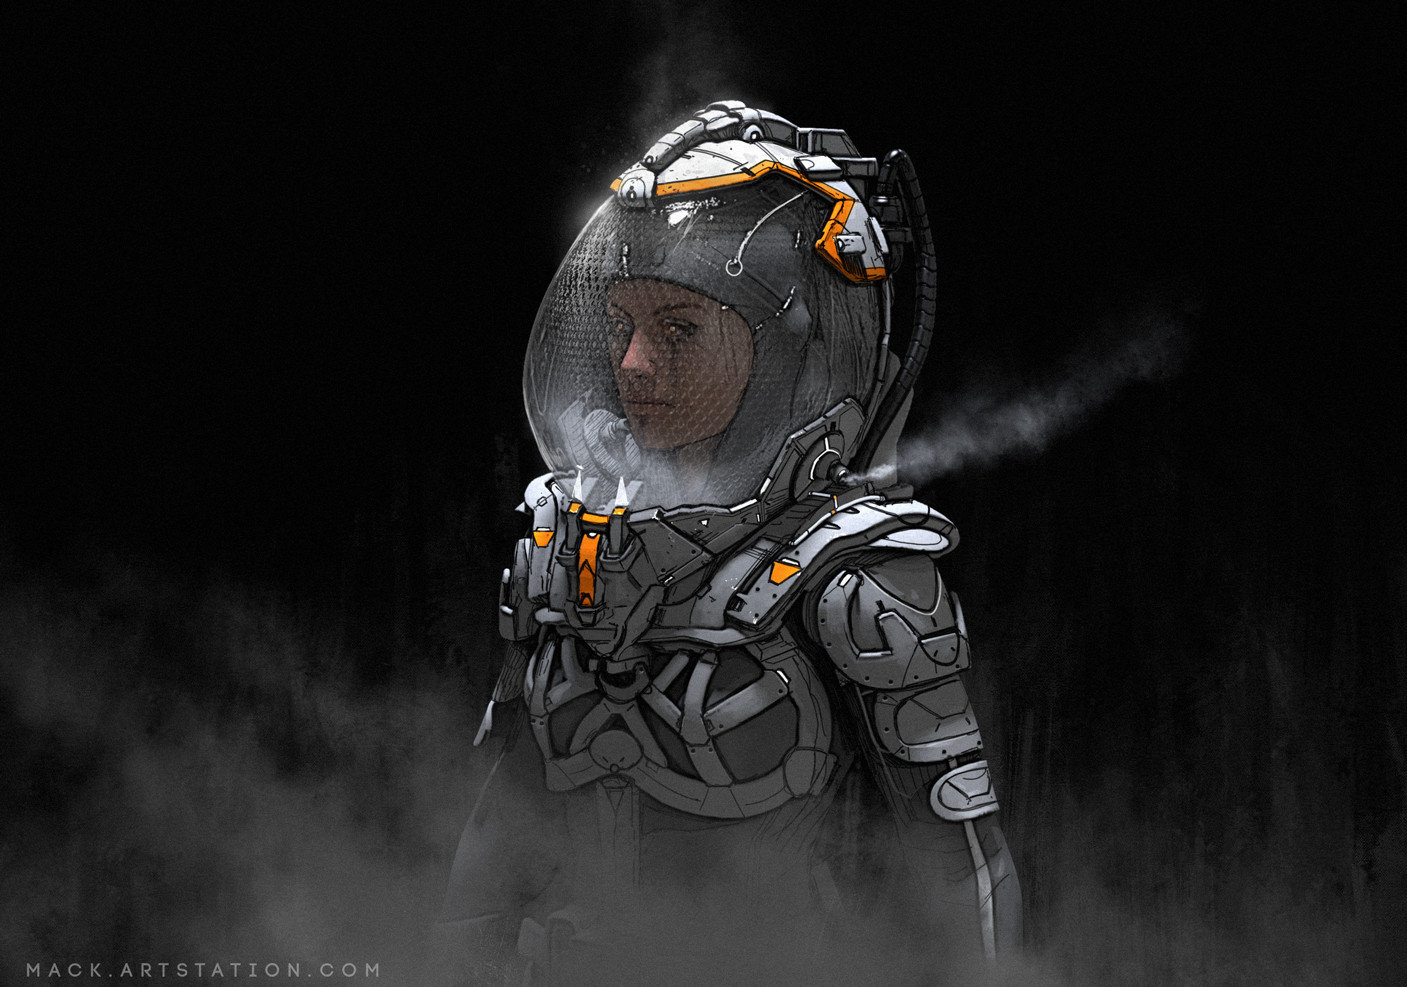 Mack sztaba space suit 9 26 2017